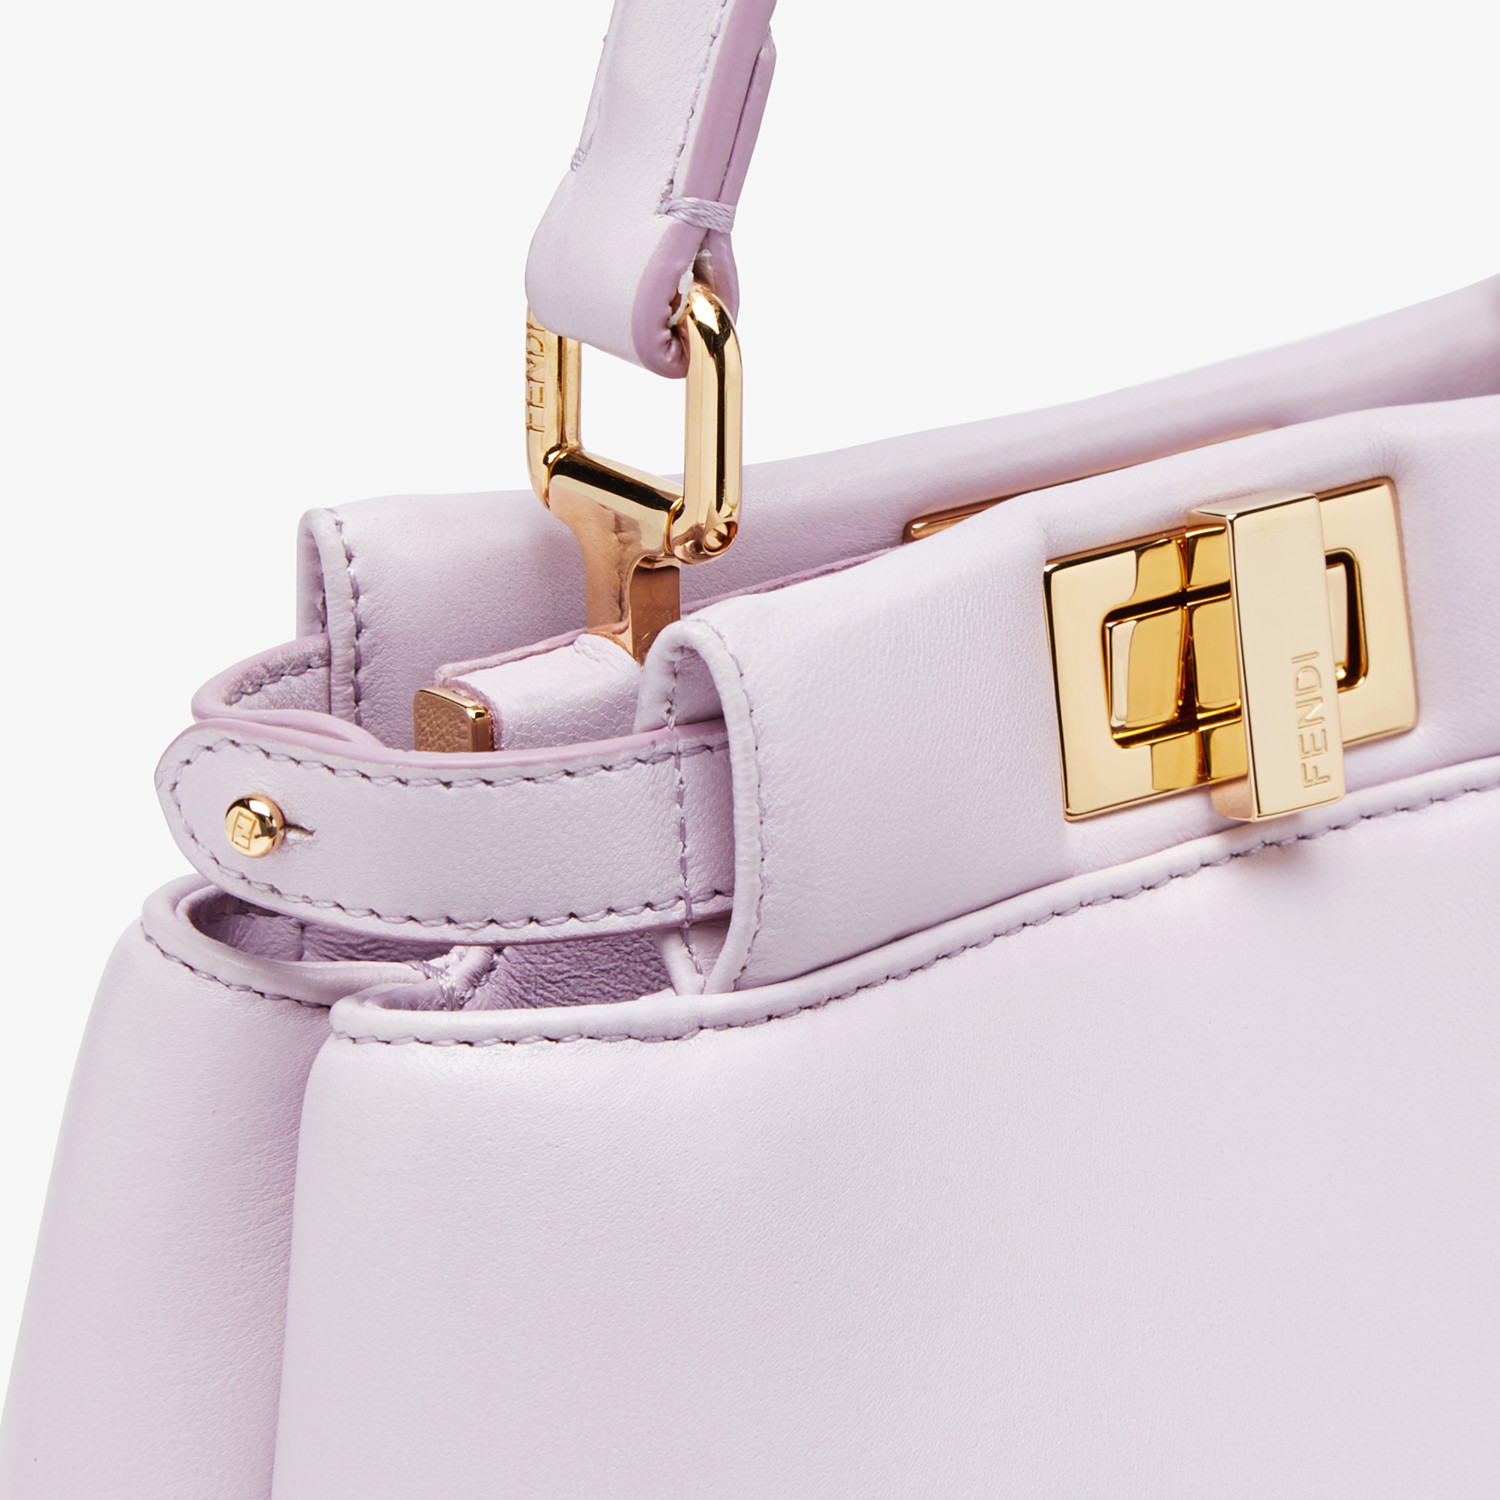 FENDI PEEKABOO ICONIC XS - Lilac nappa leather bag - view 6 detail